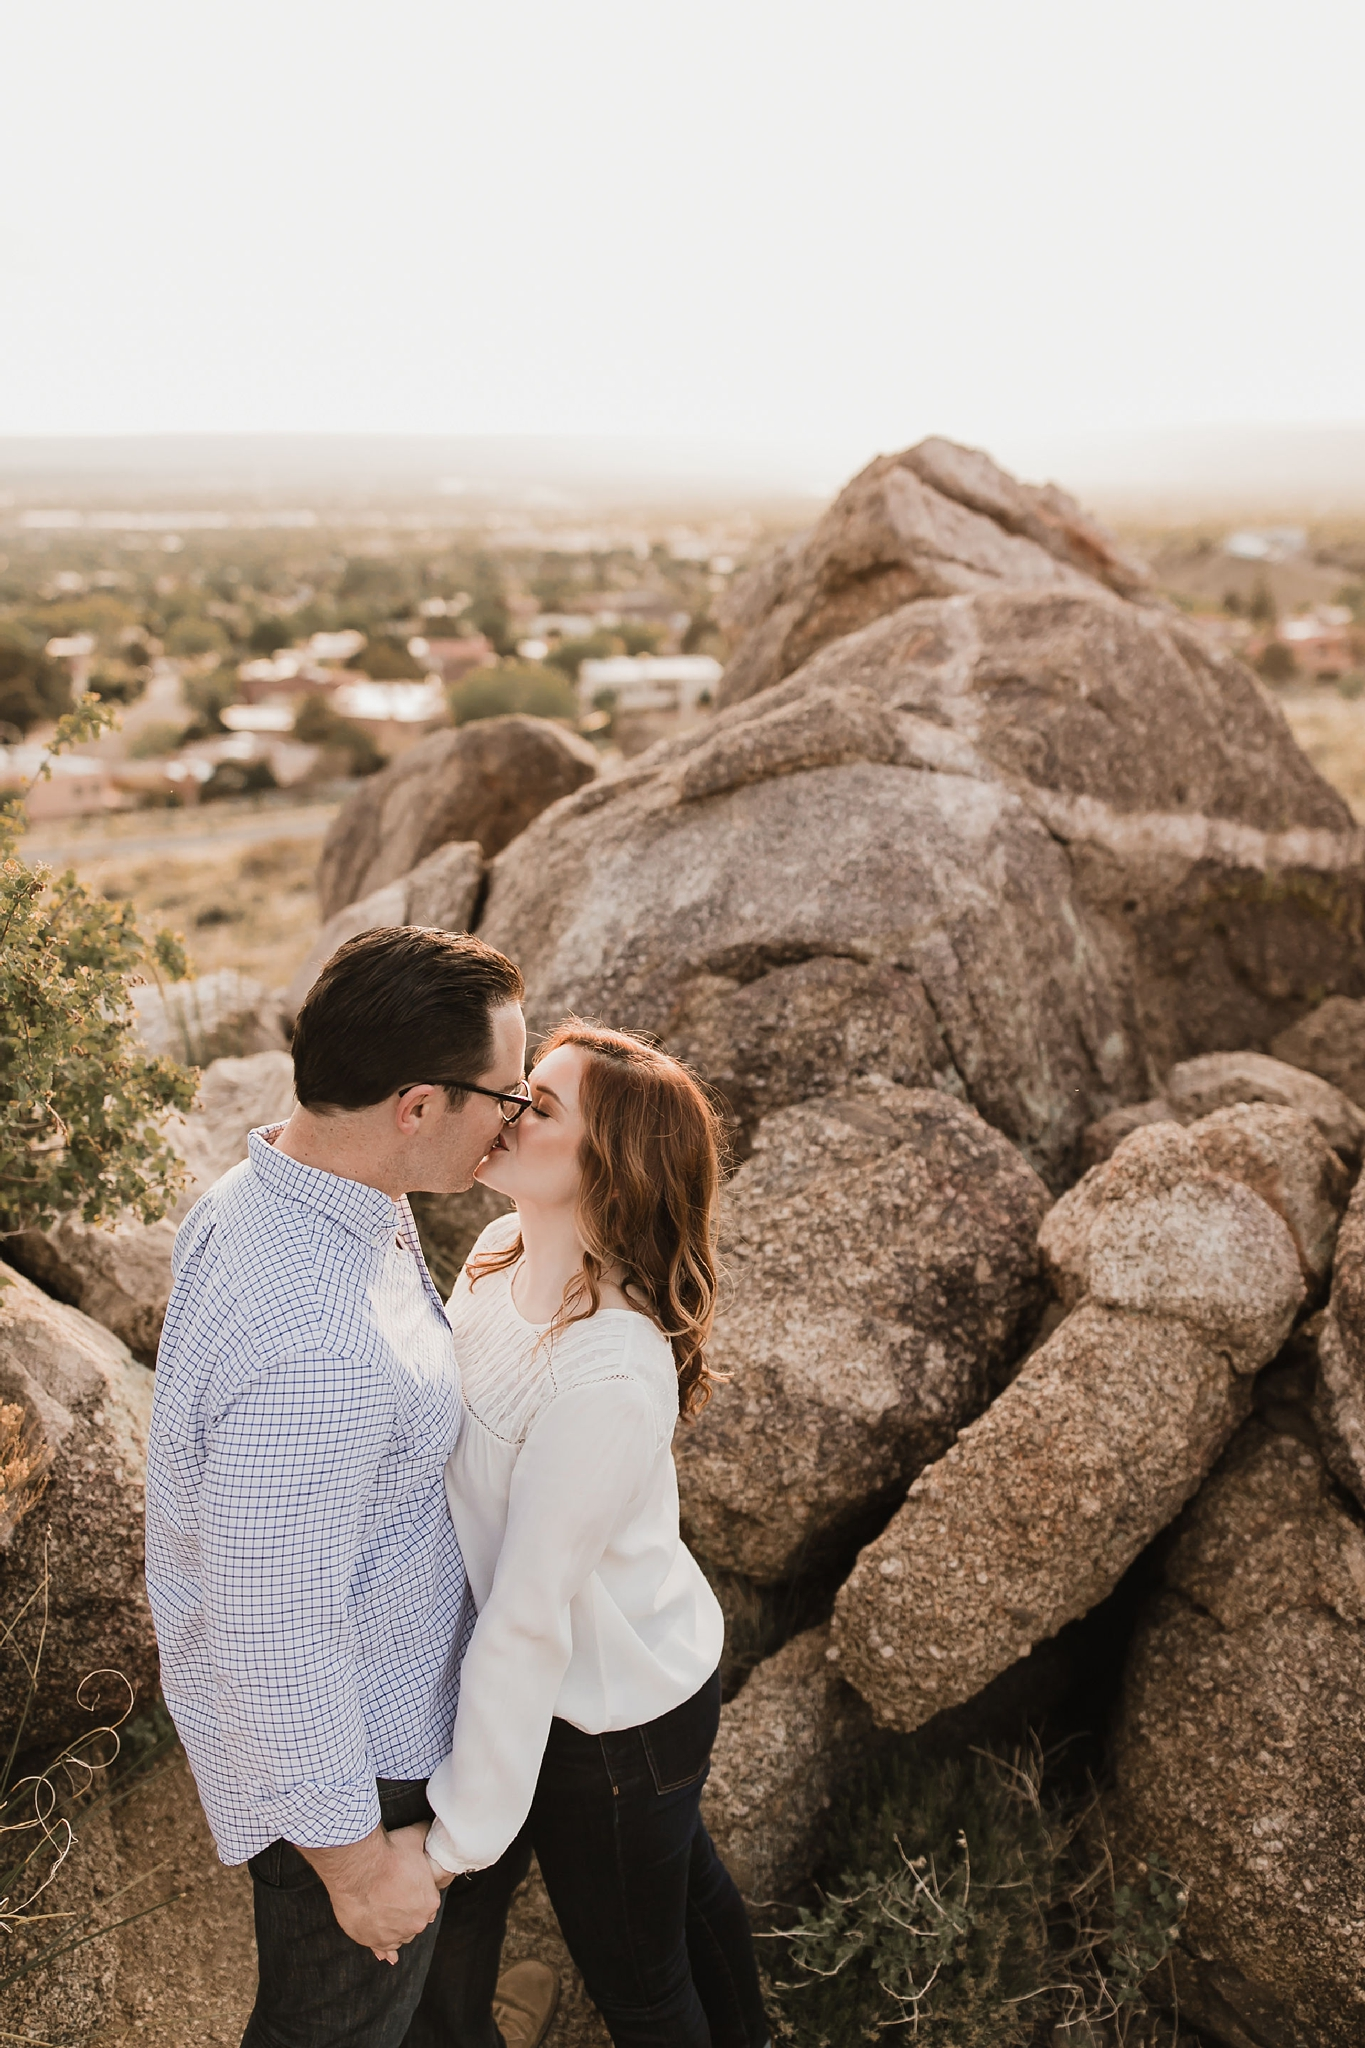 Alicia+lucia+photography+-+albuquerque+wedding+photographer+-+santa+fe+wedding+photography+-+new+mexico+wedding+photographer+-+new+mexico+wedding+-+new+mexico+engagement+-+engagement+photographer+-+mountain+engagement+-+desert+engagement_0017.jpg